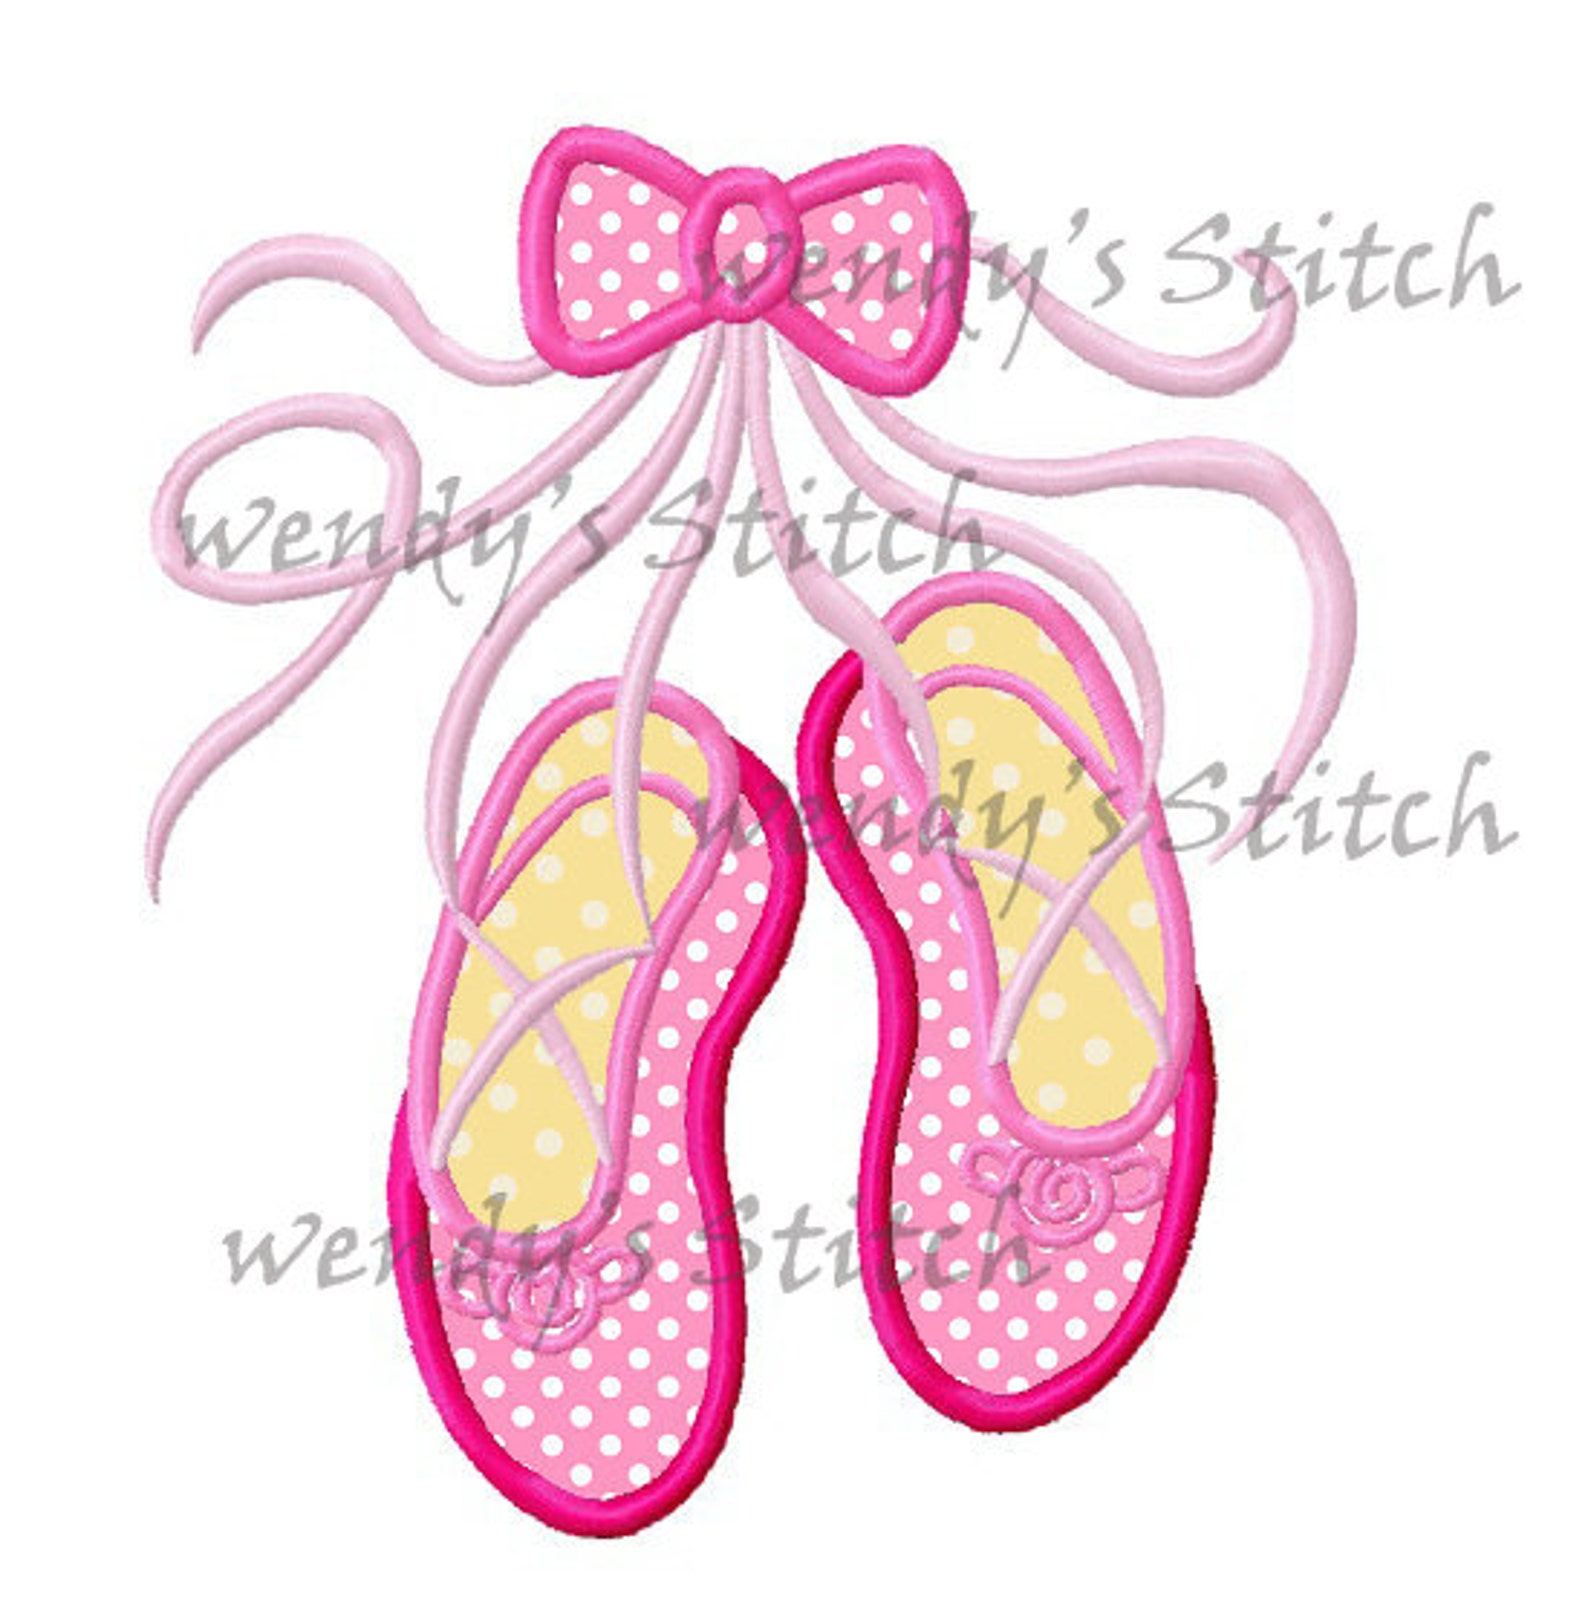 ballerina ballet shoes slippers machine embroidery design digital applique